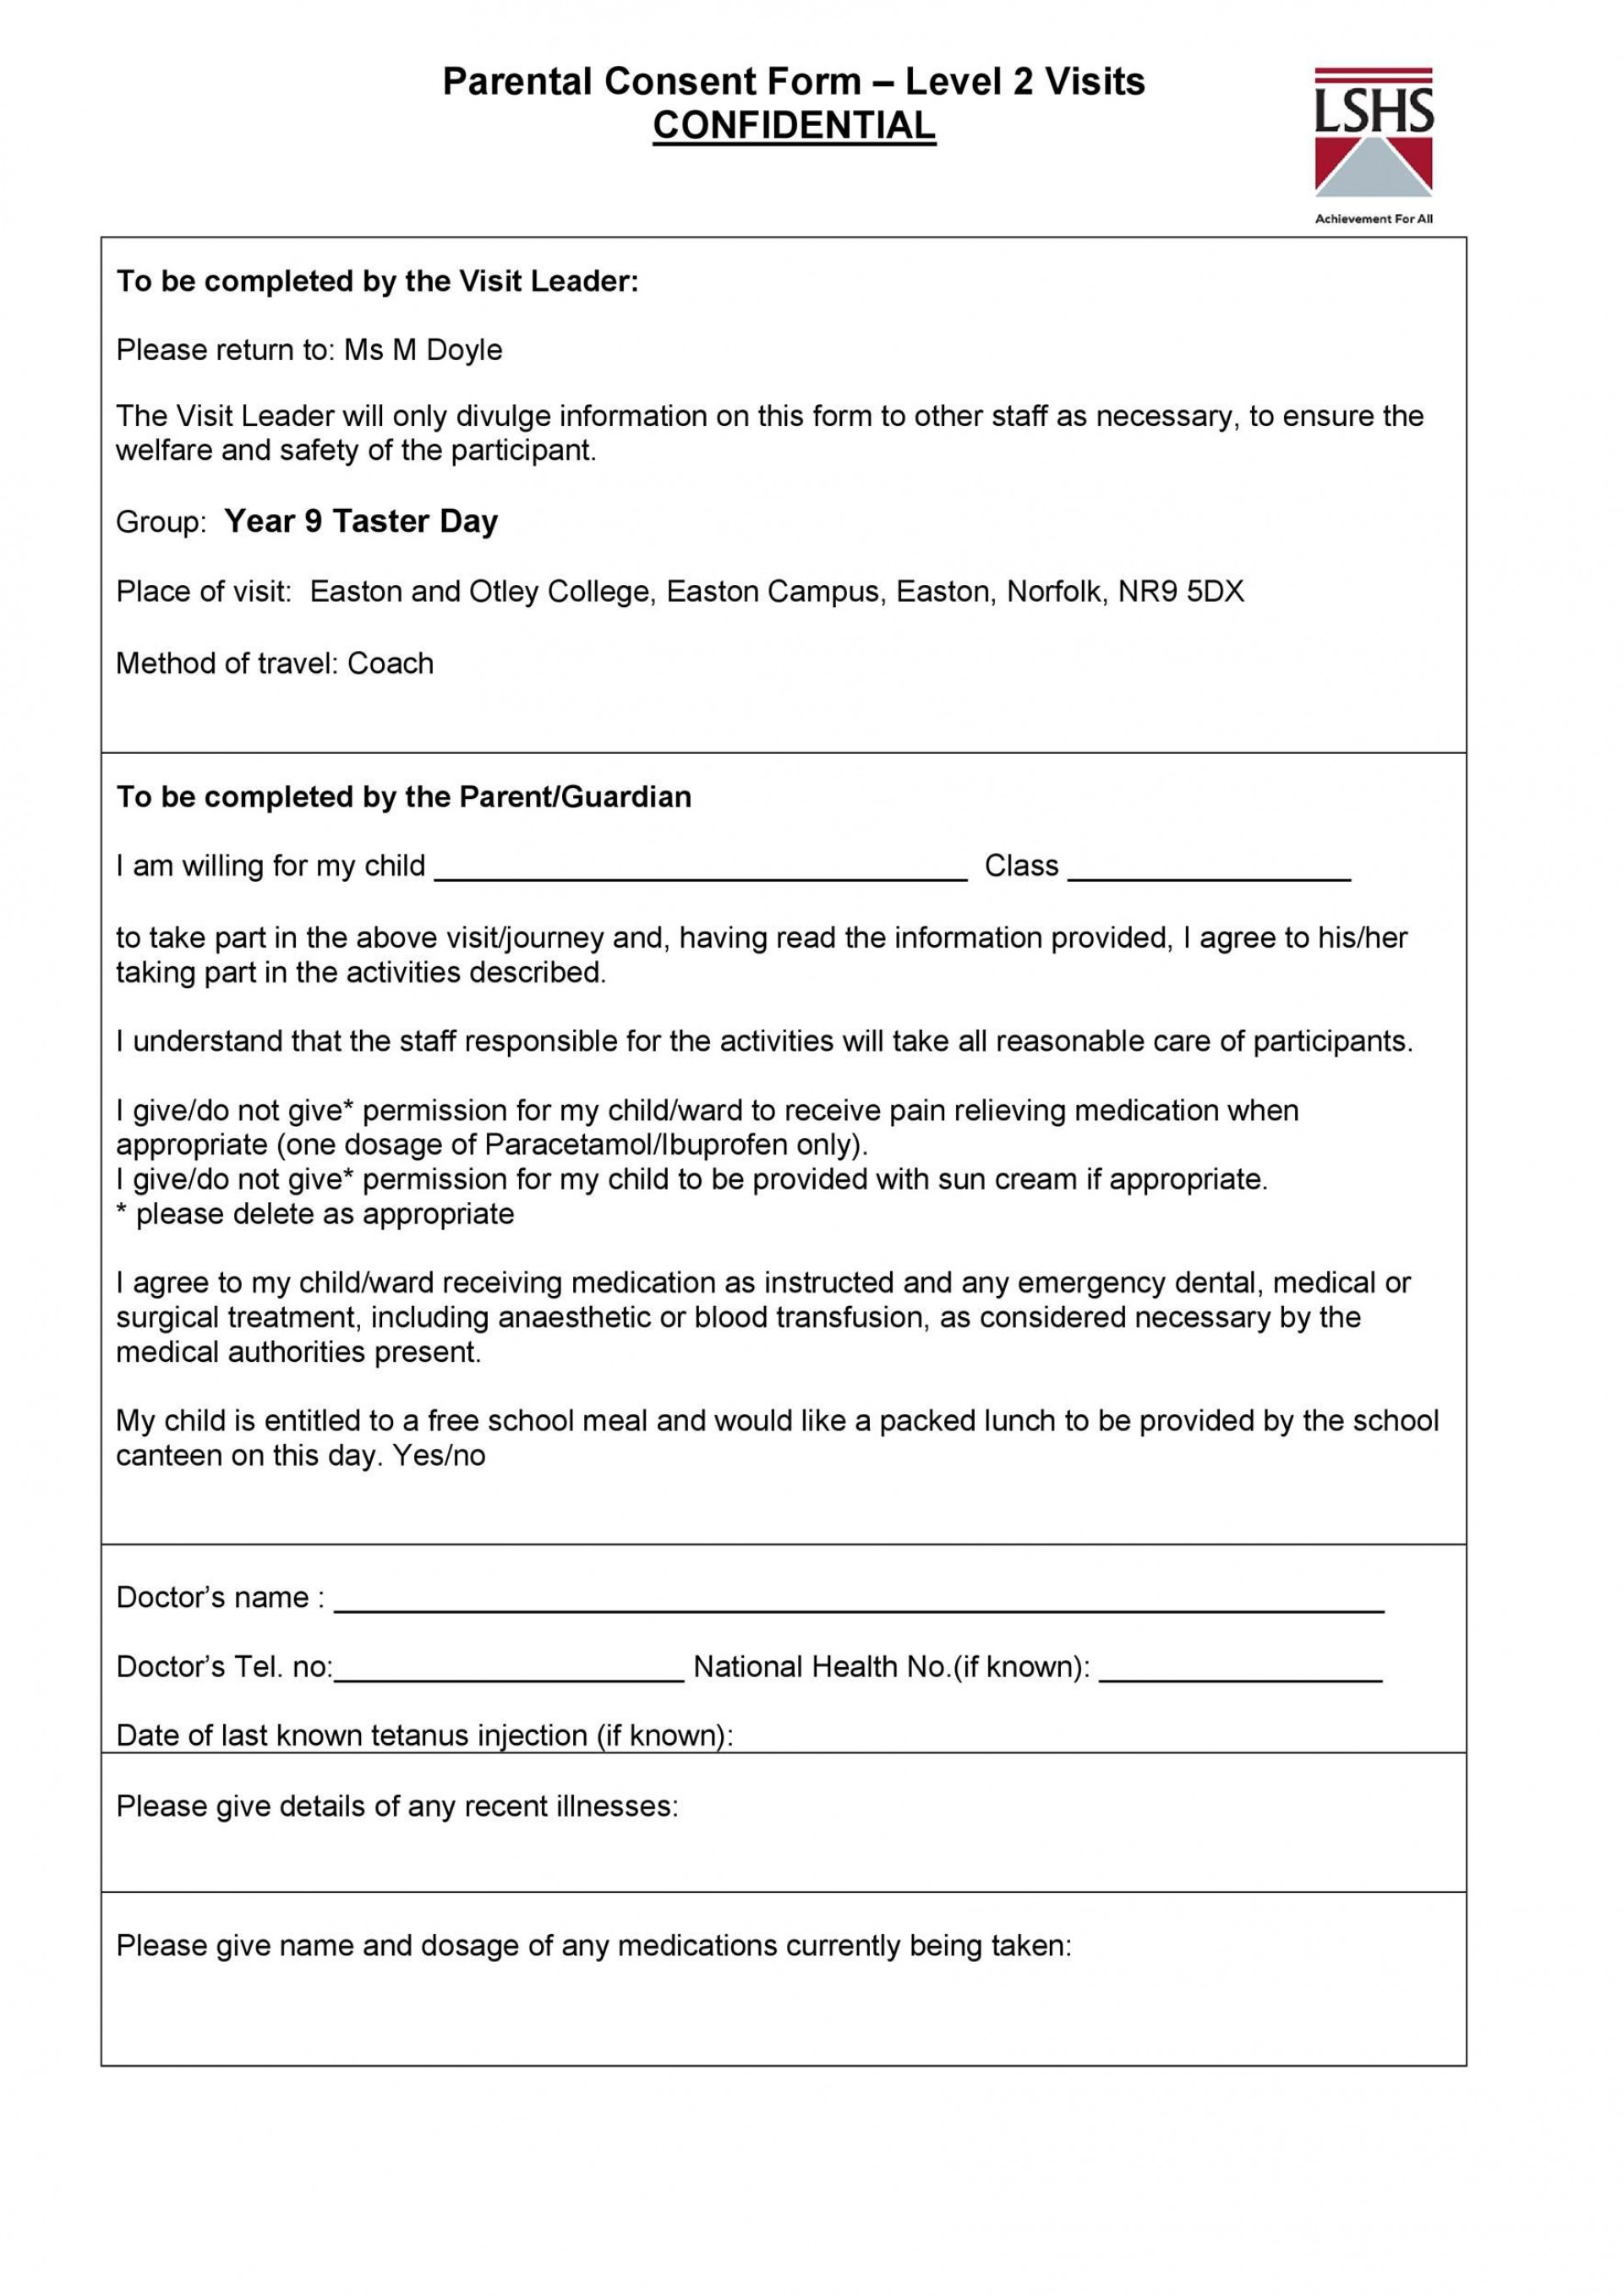 009 Staggering Free Parental Medical Consent Form Template High Definition 1920